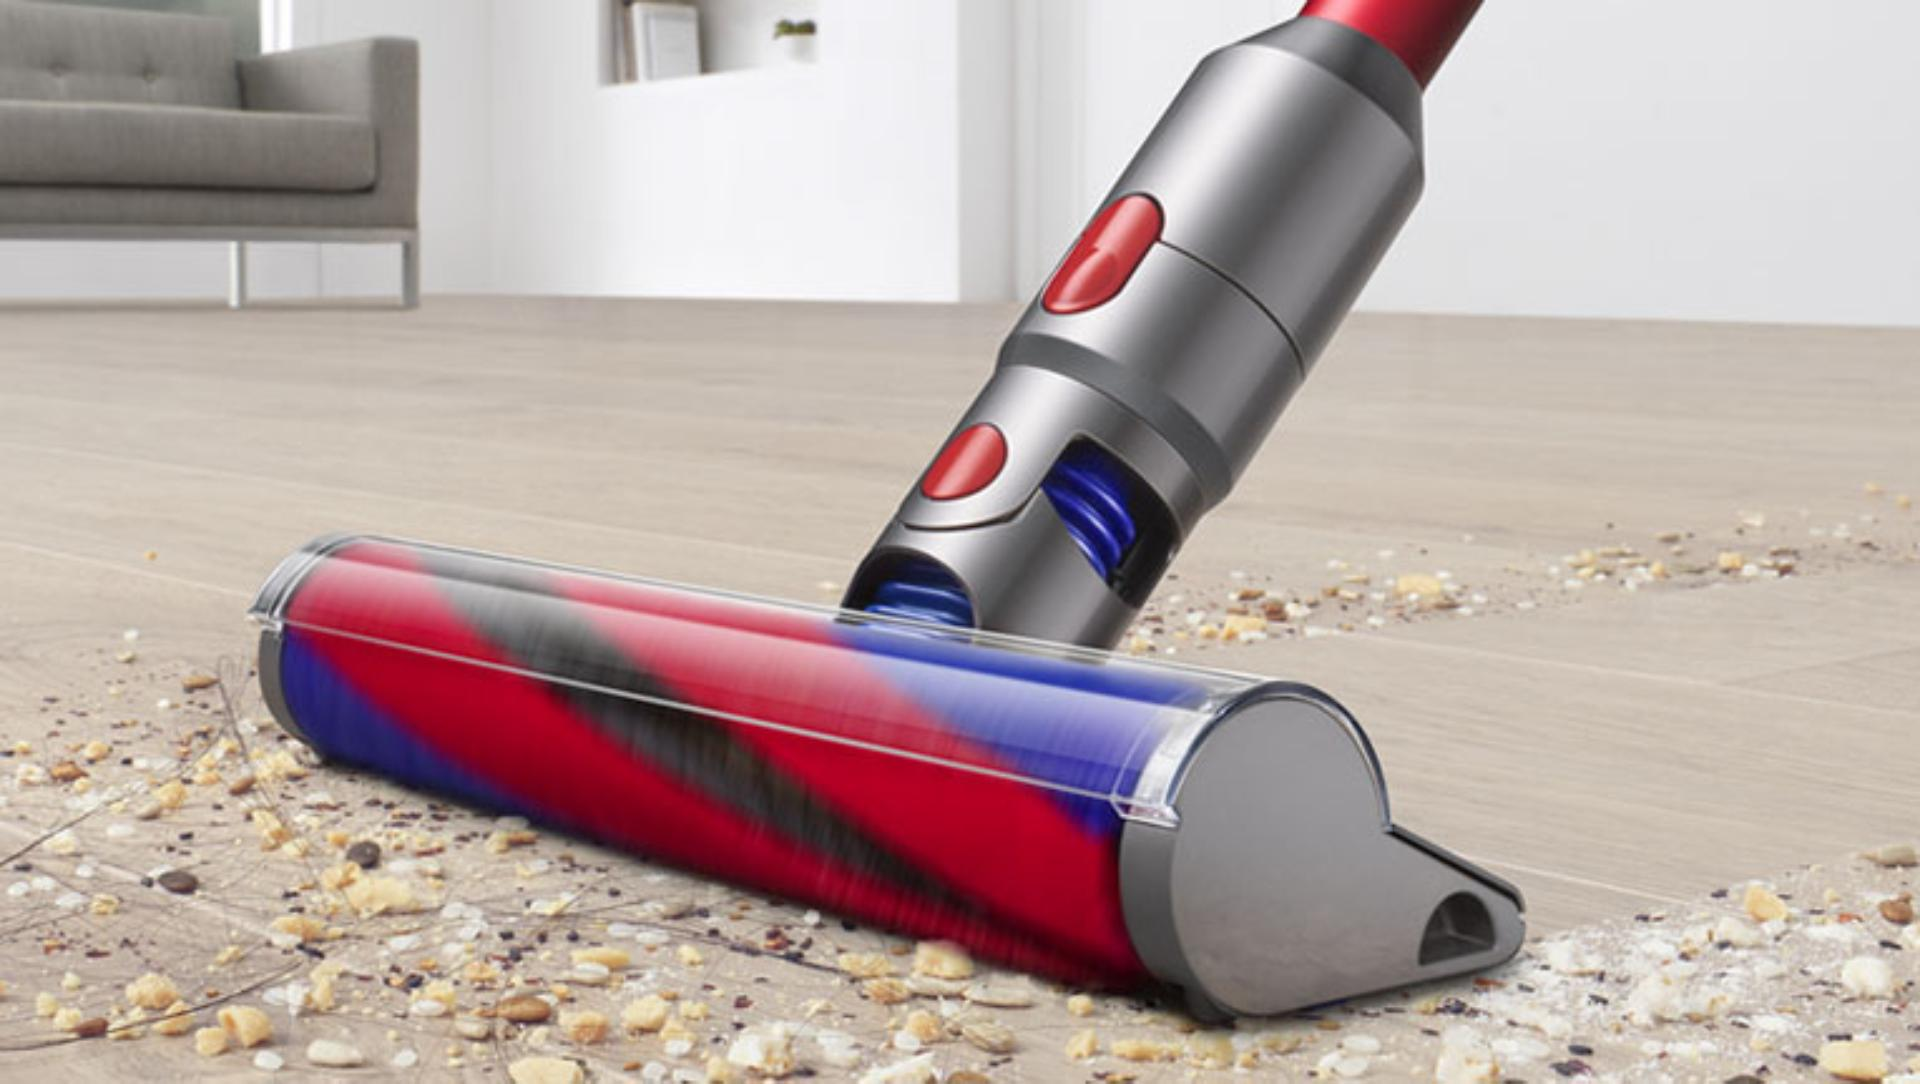 Dyson V8 Slim vacuum cleaning a carpet